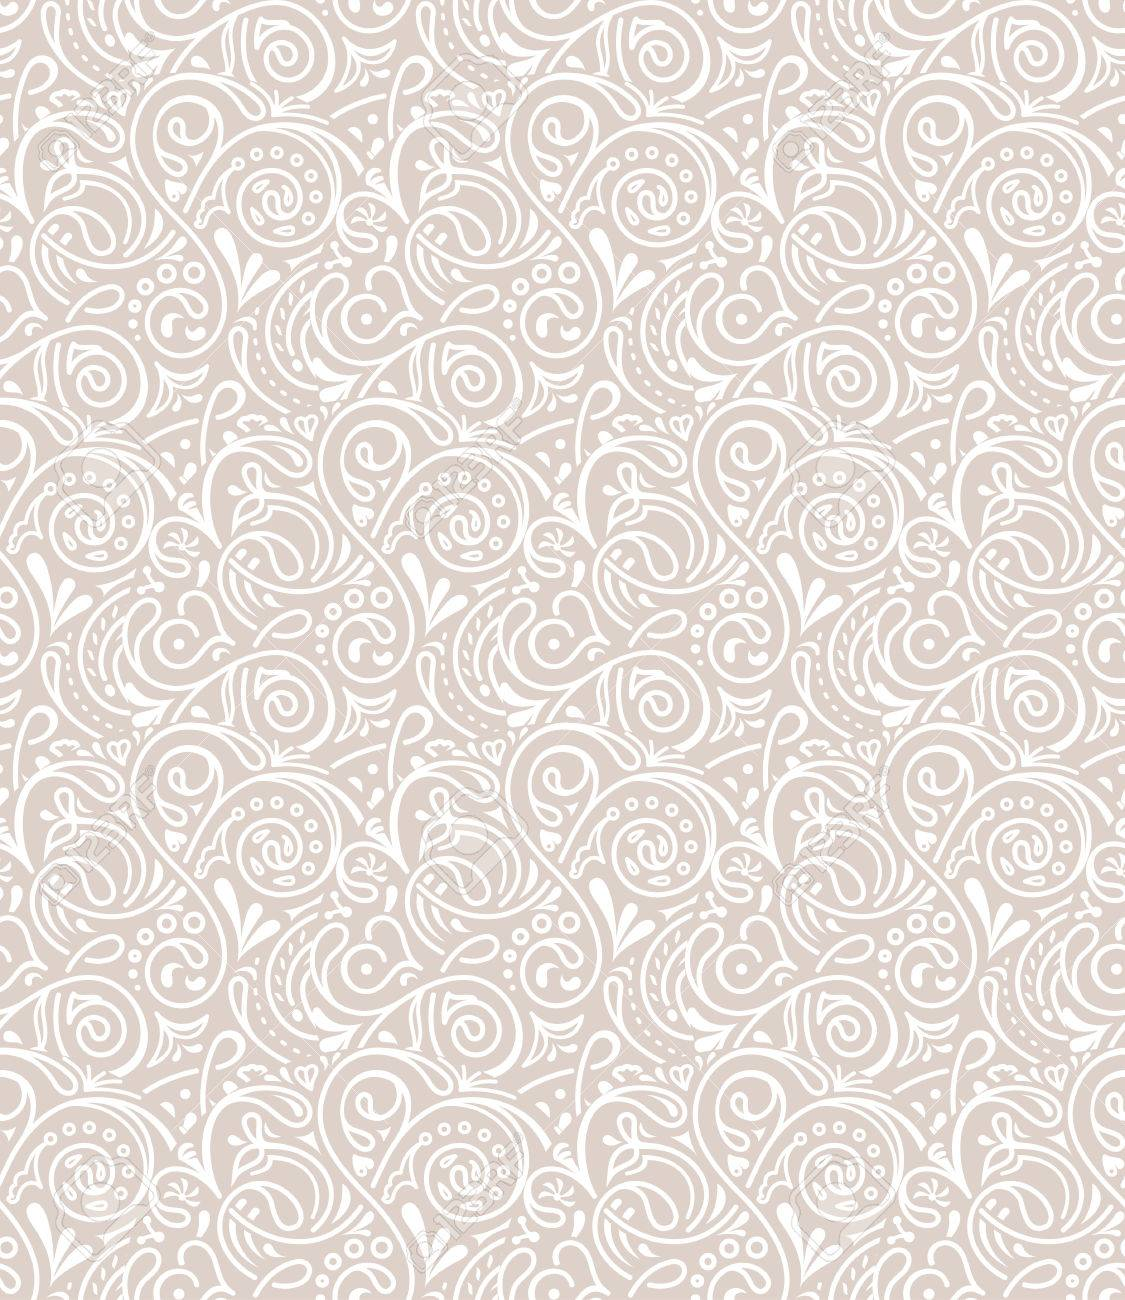 Seamless Floral Tile Background Pattern In Vector Henna Paisley